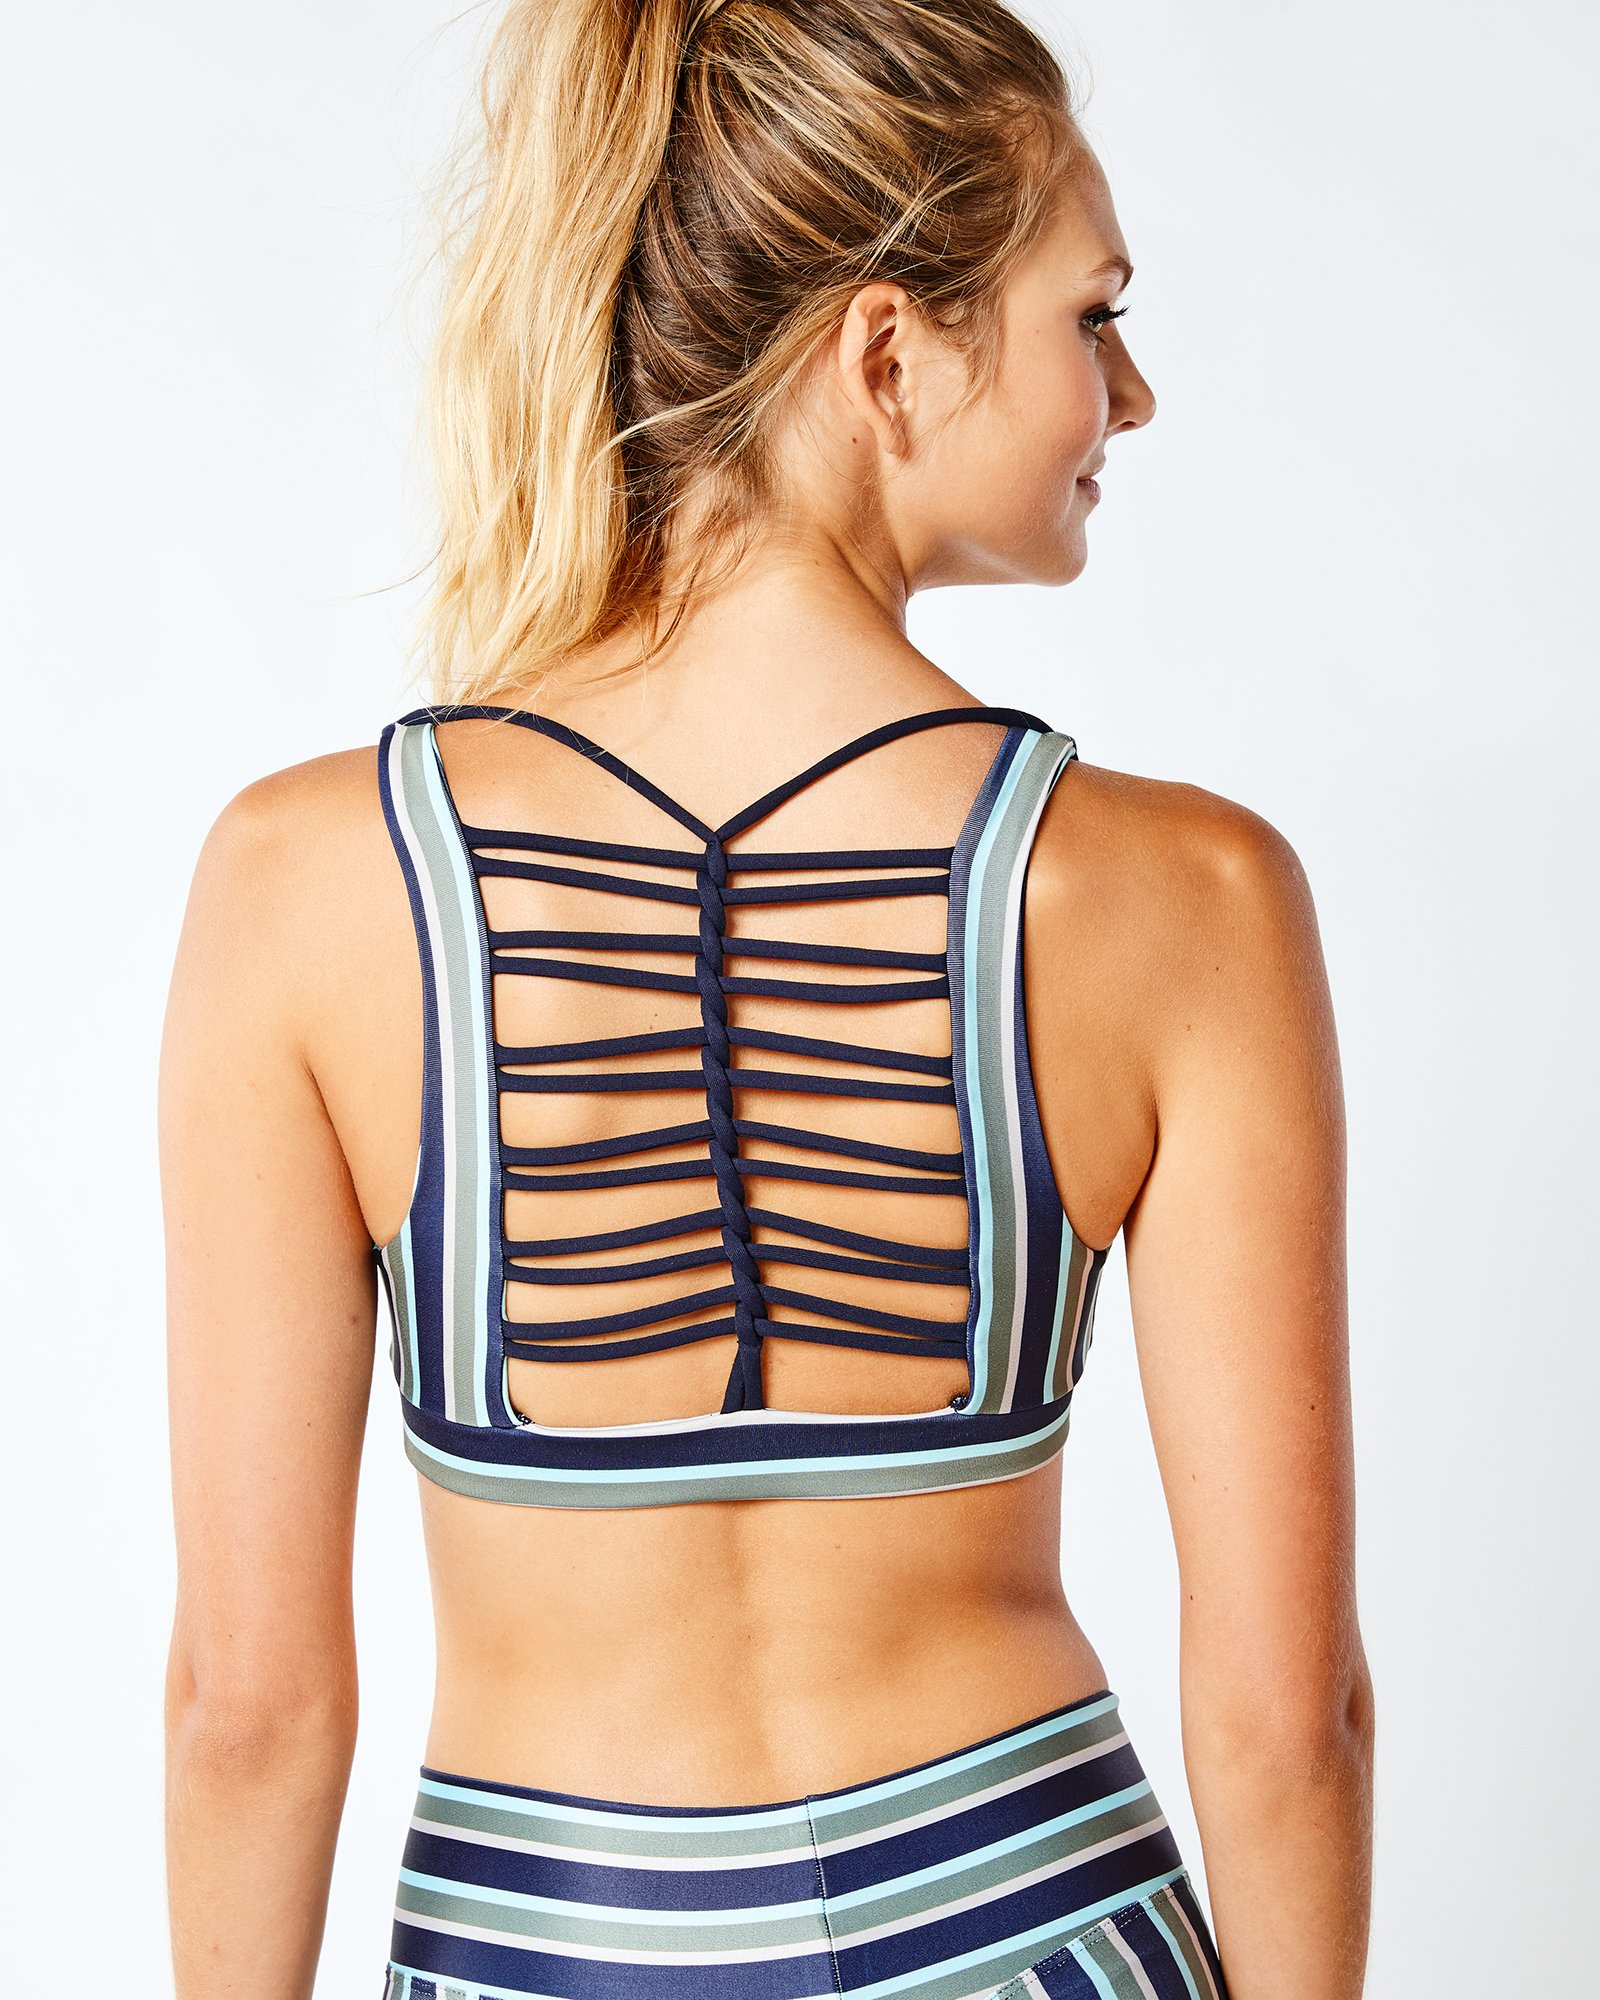 striped sports bra with open back